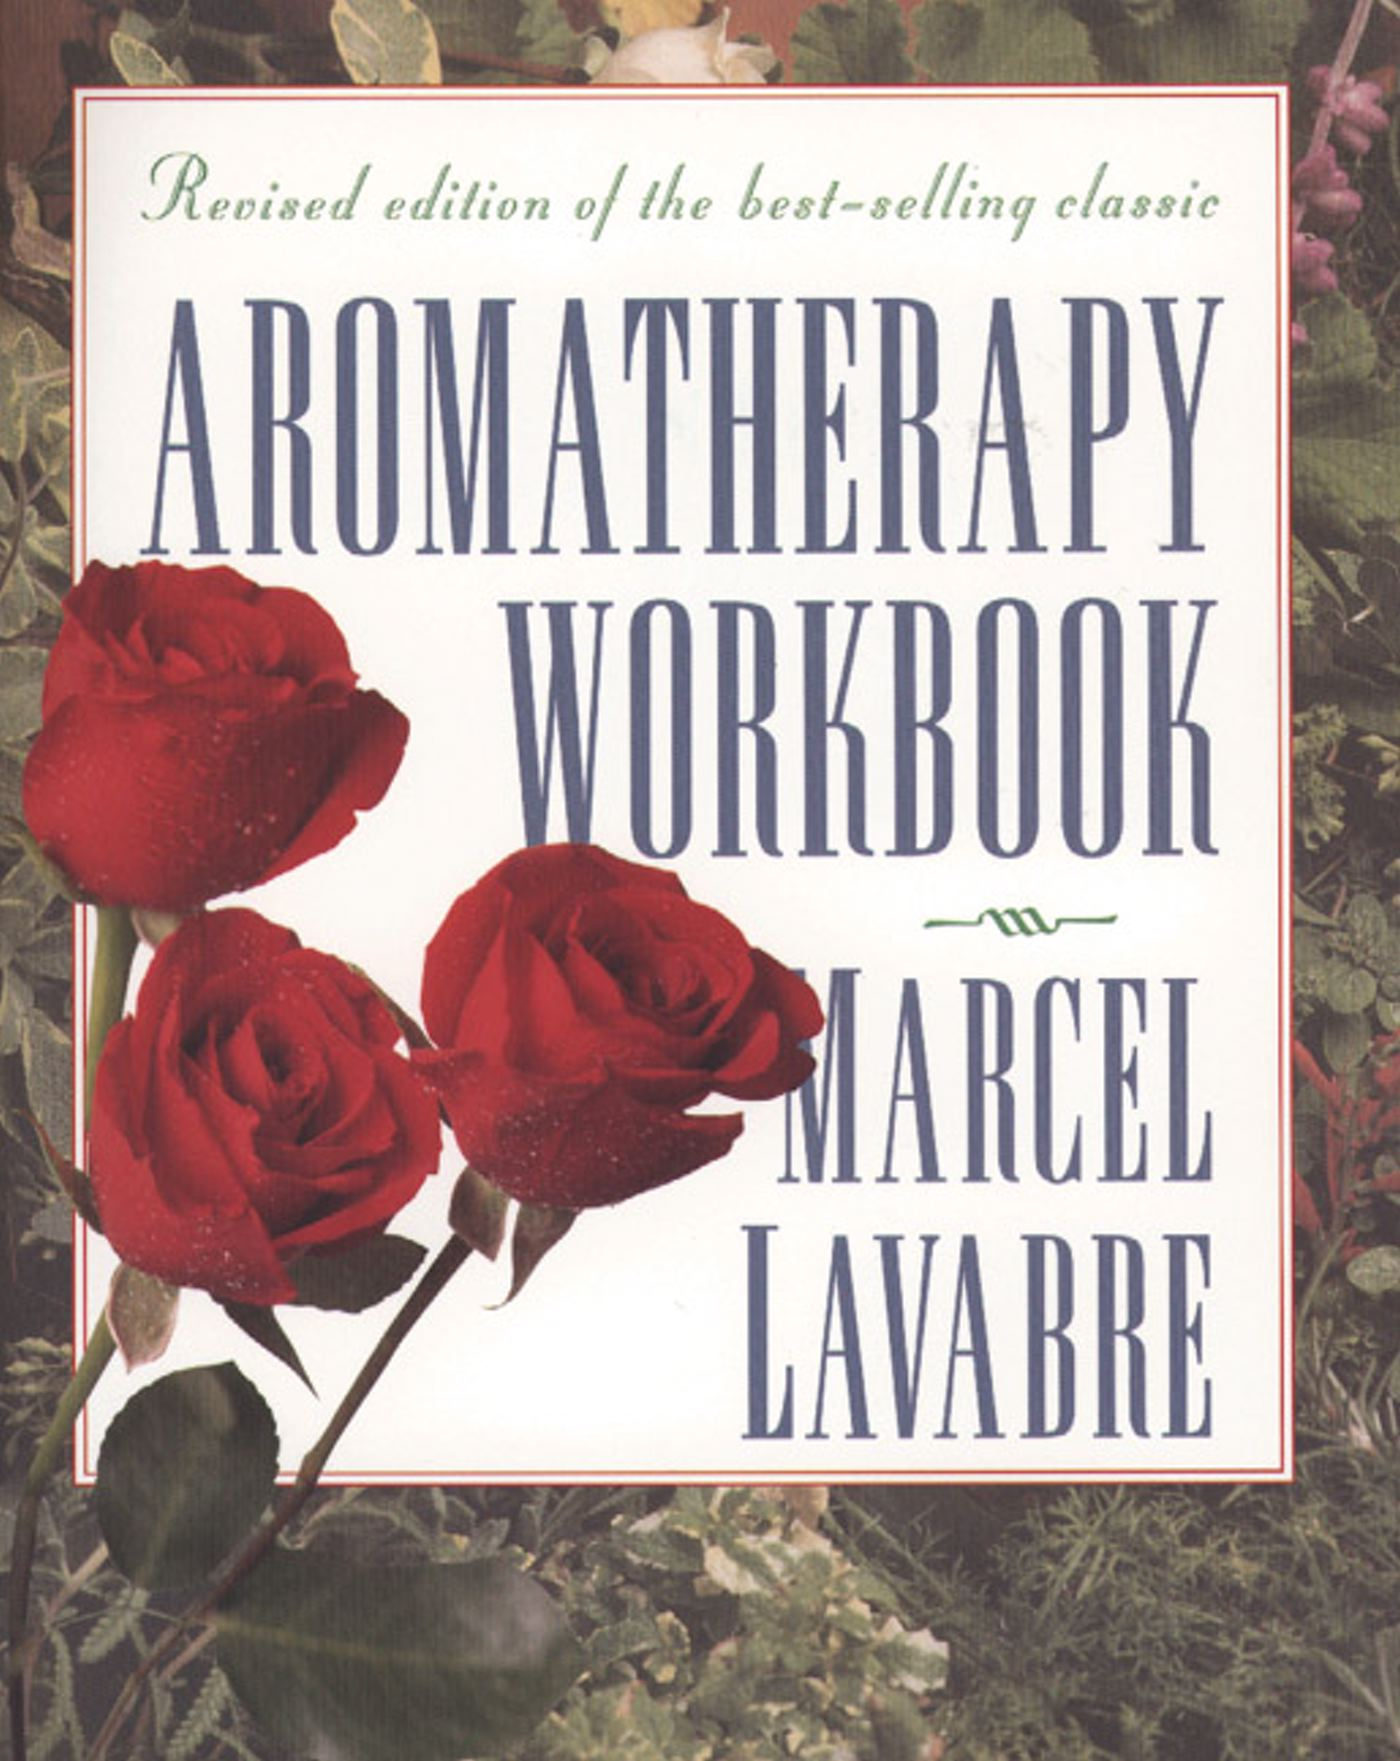 Aromatherapy-workbook-9780892816446_hr